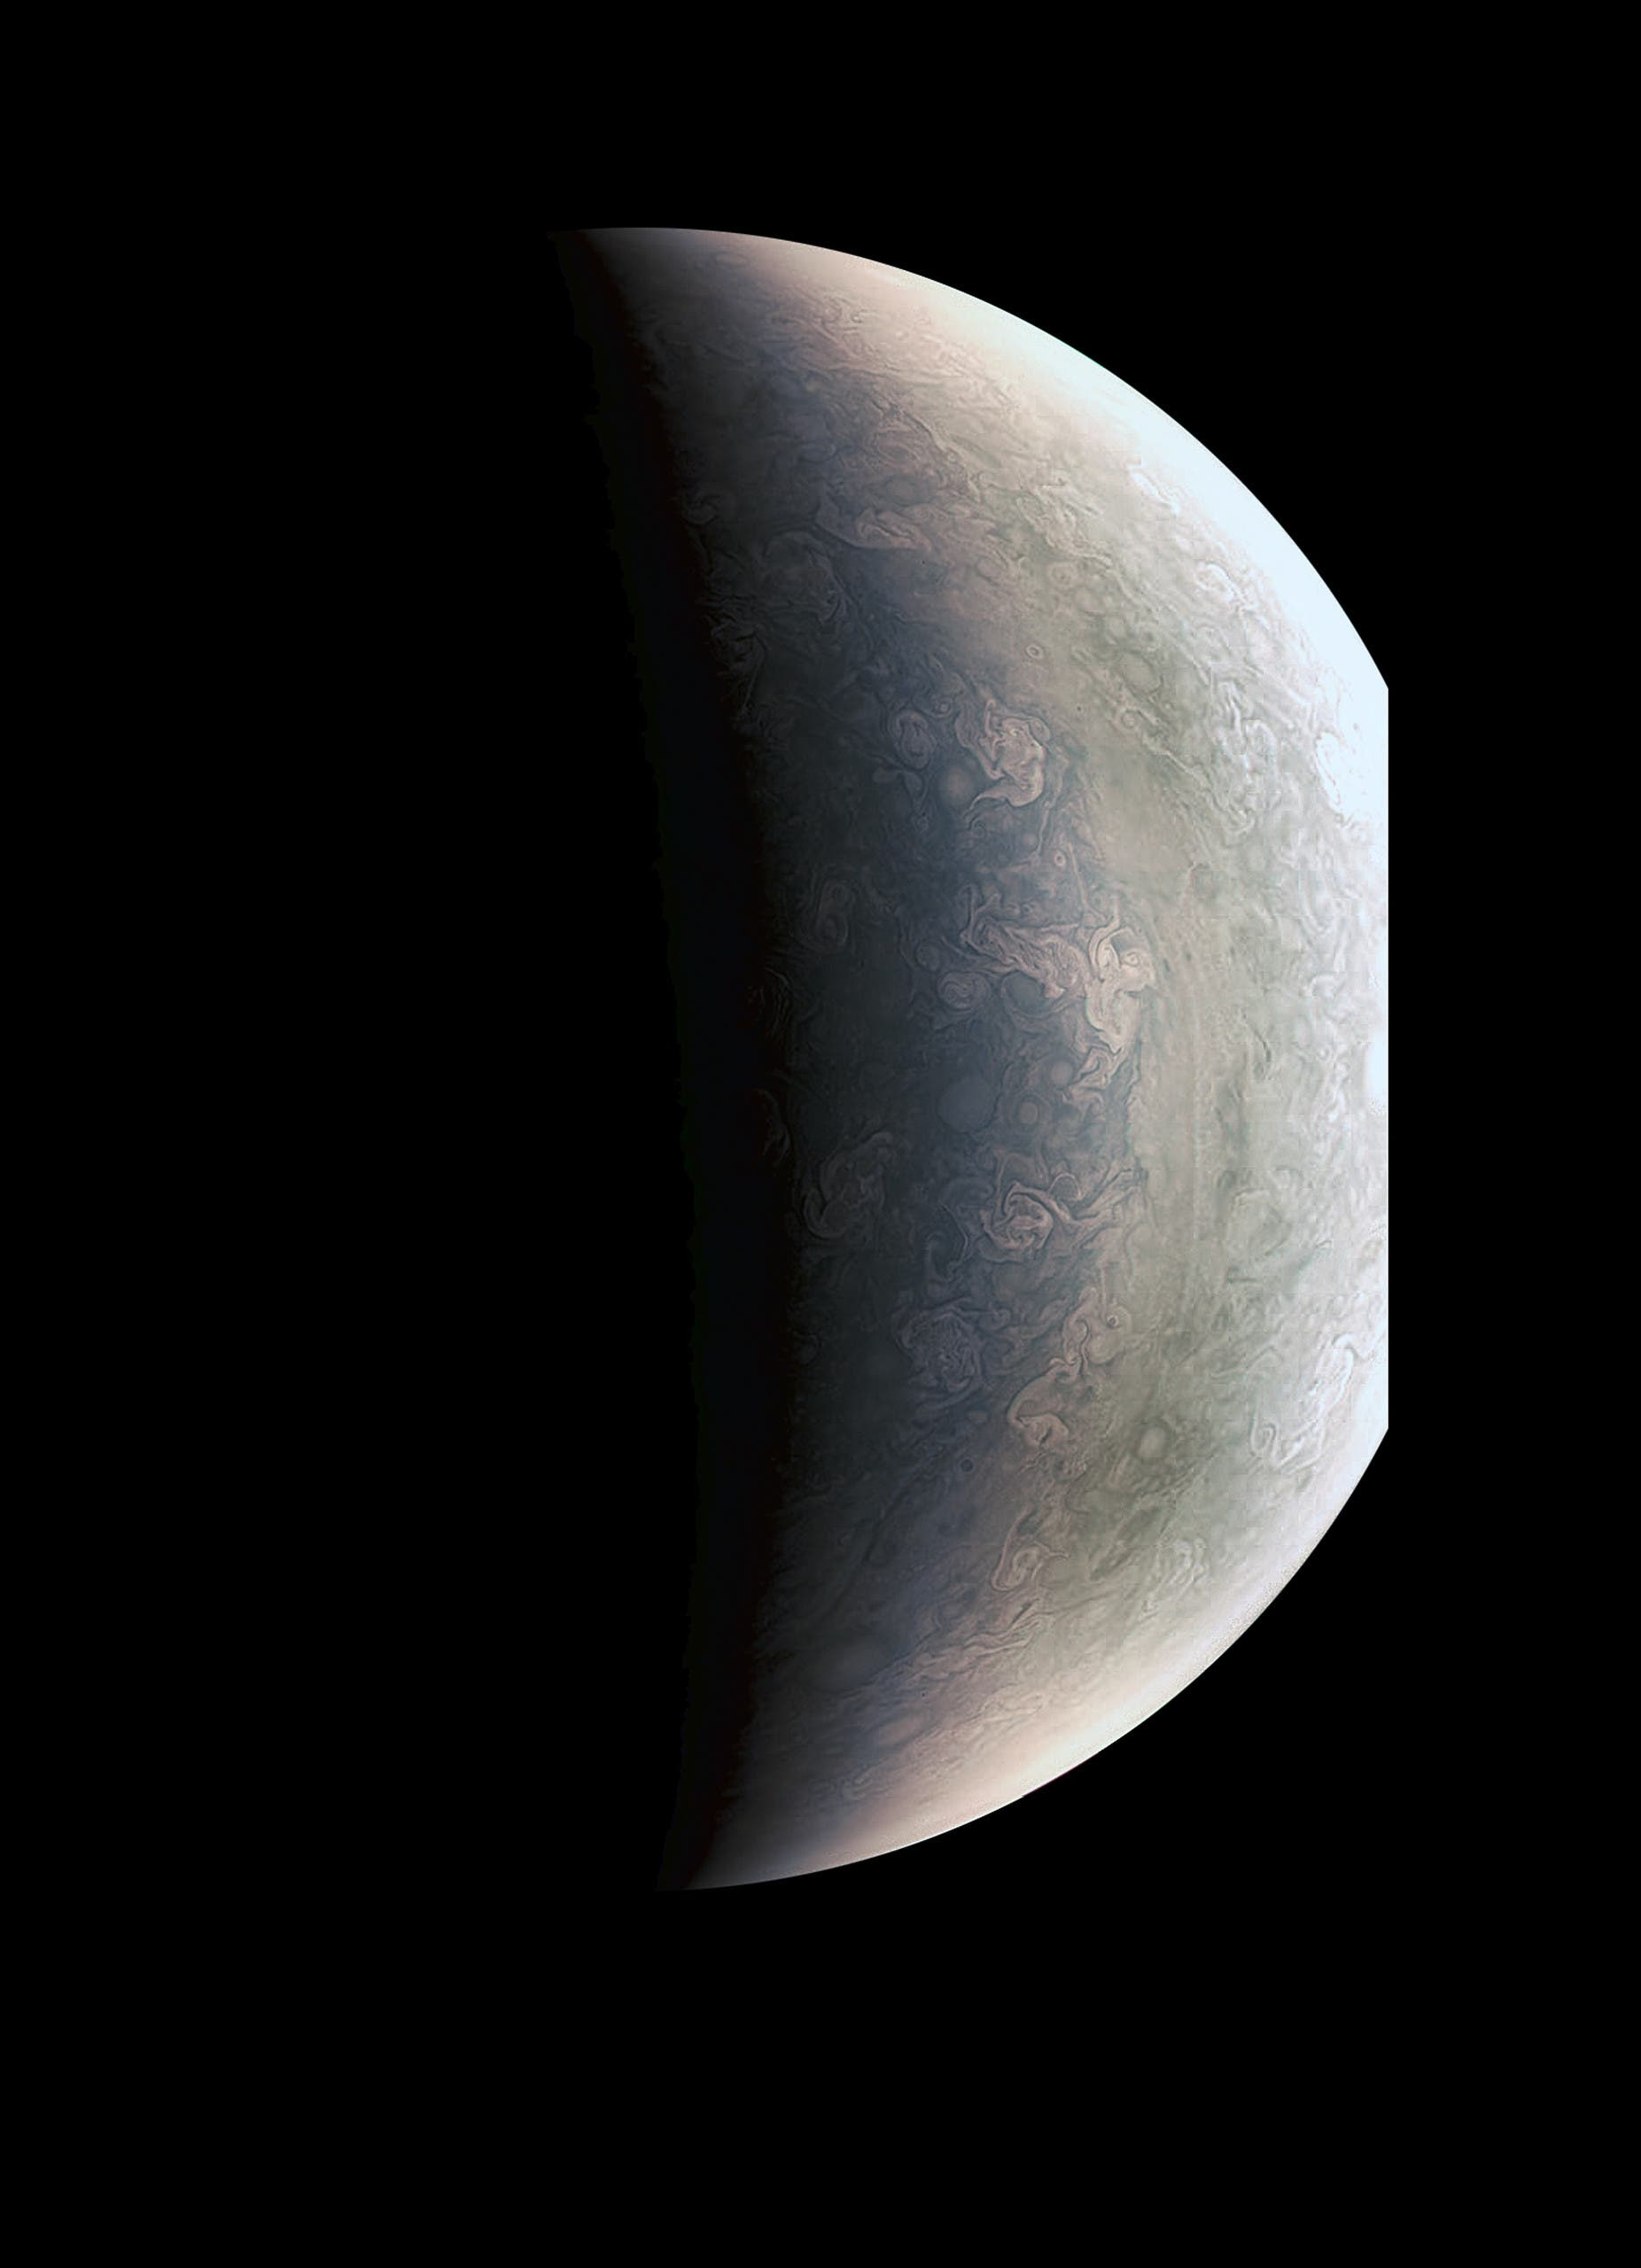 This image from NASA's Juno spacecraft provides a never-before-seen perspective on Jupiter's south pole. The JunoCam instrument acquired the view on August 27, 2016, when the spacecraft was about 58,700 miles (94,500 kilometers) above the polar region. At this point, the spacecraft was about an hour past its closest approach, and fine detail in the south polar region is clearly resolved.  HO / NASA / AFP